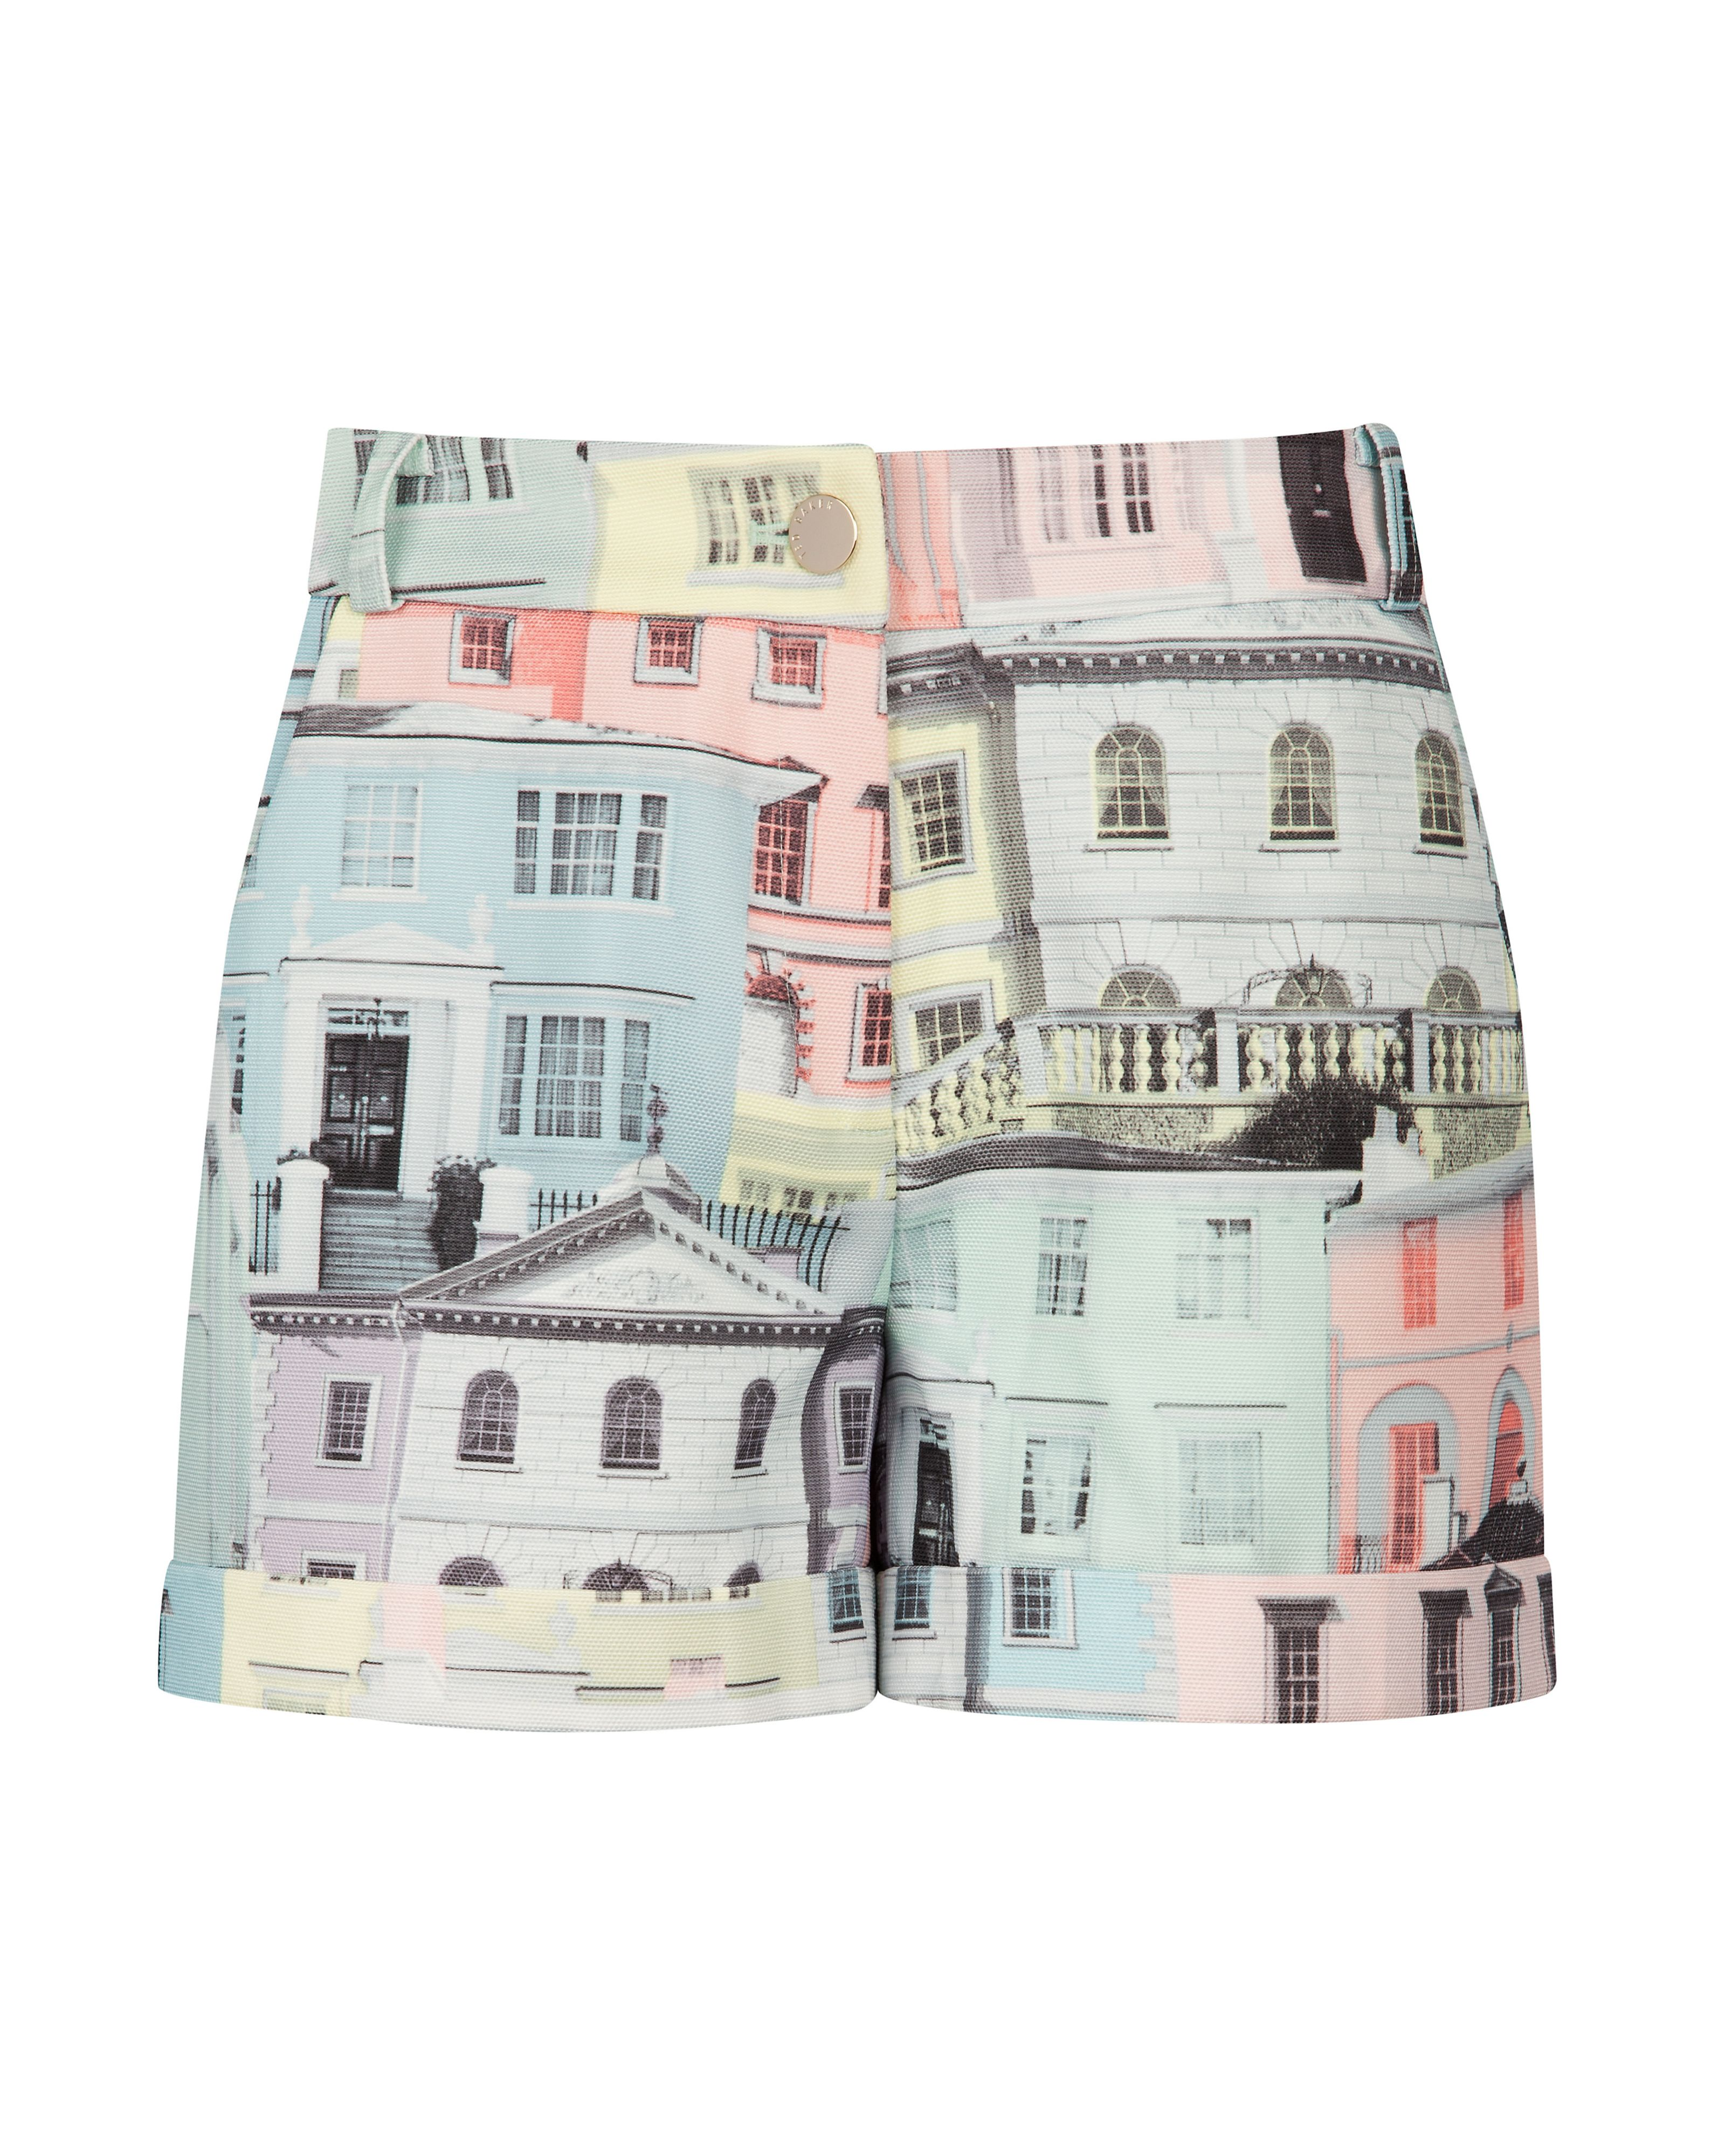 Lelah regency houses printed shorts